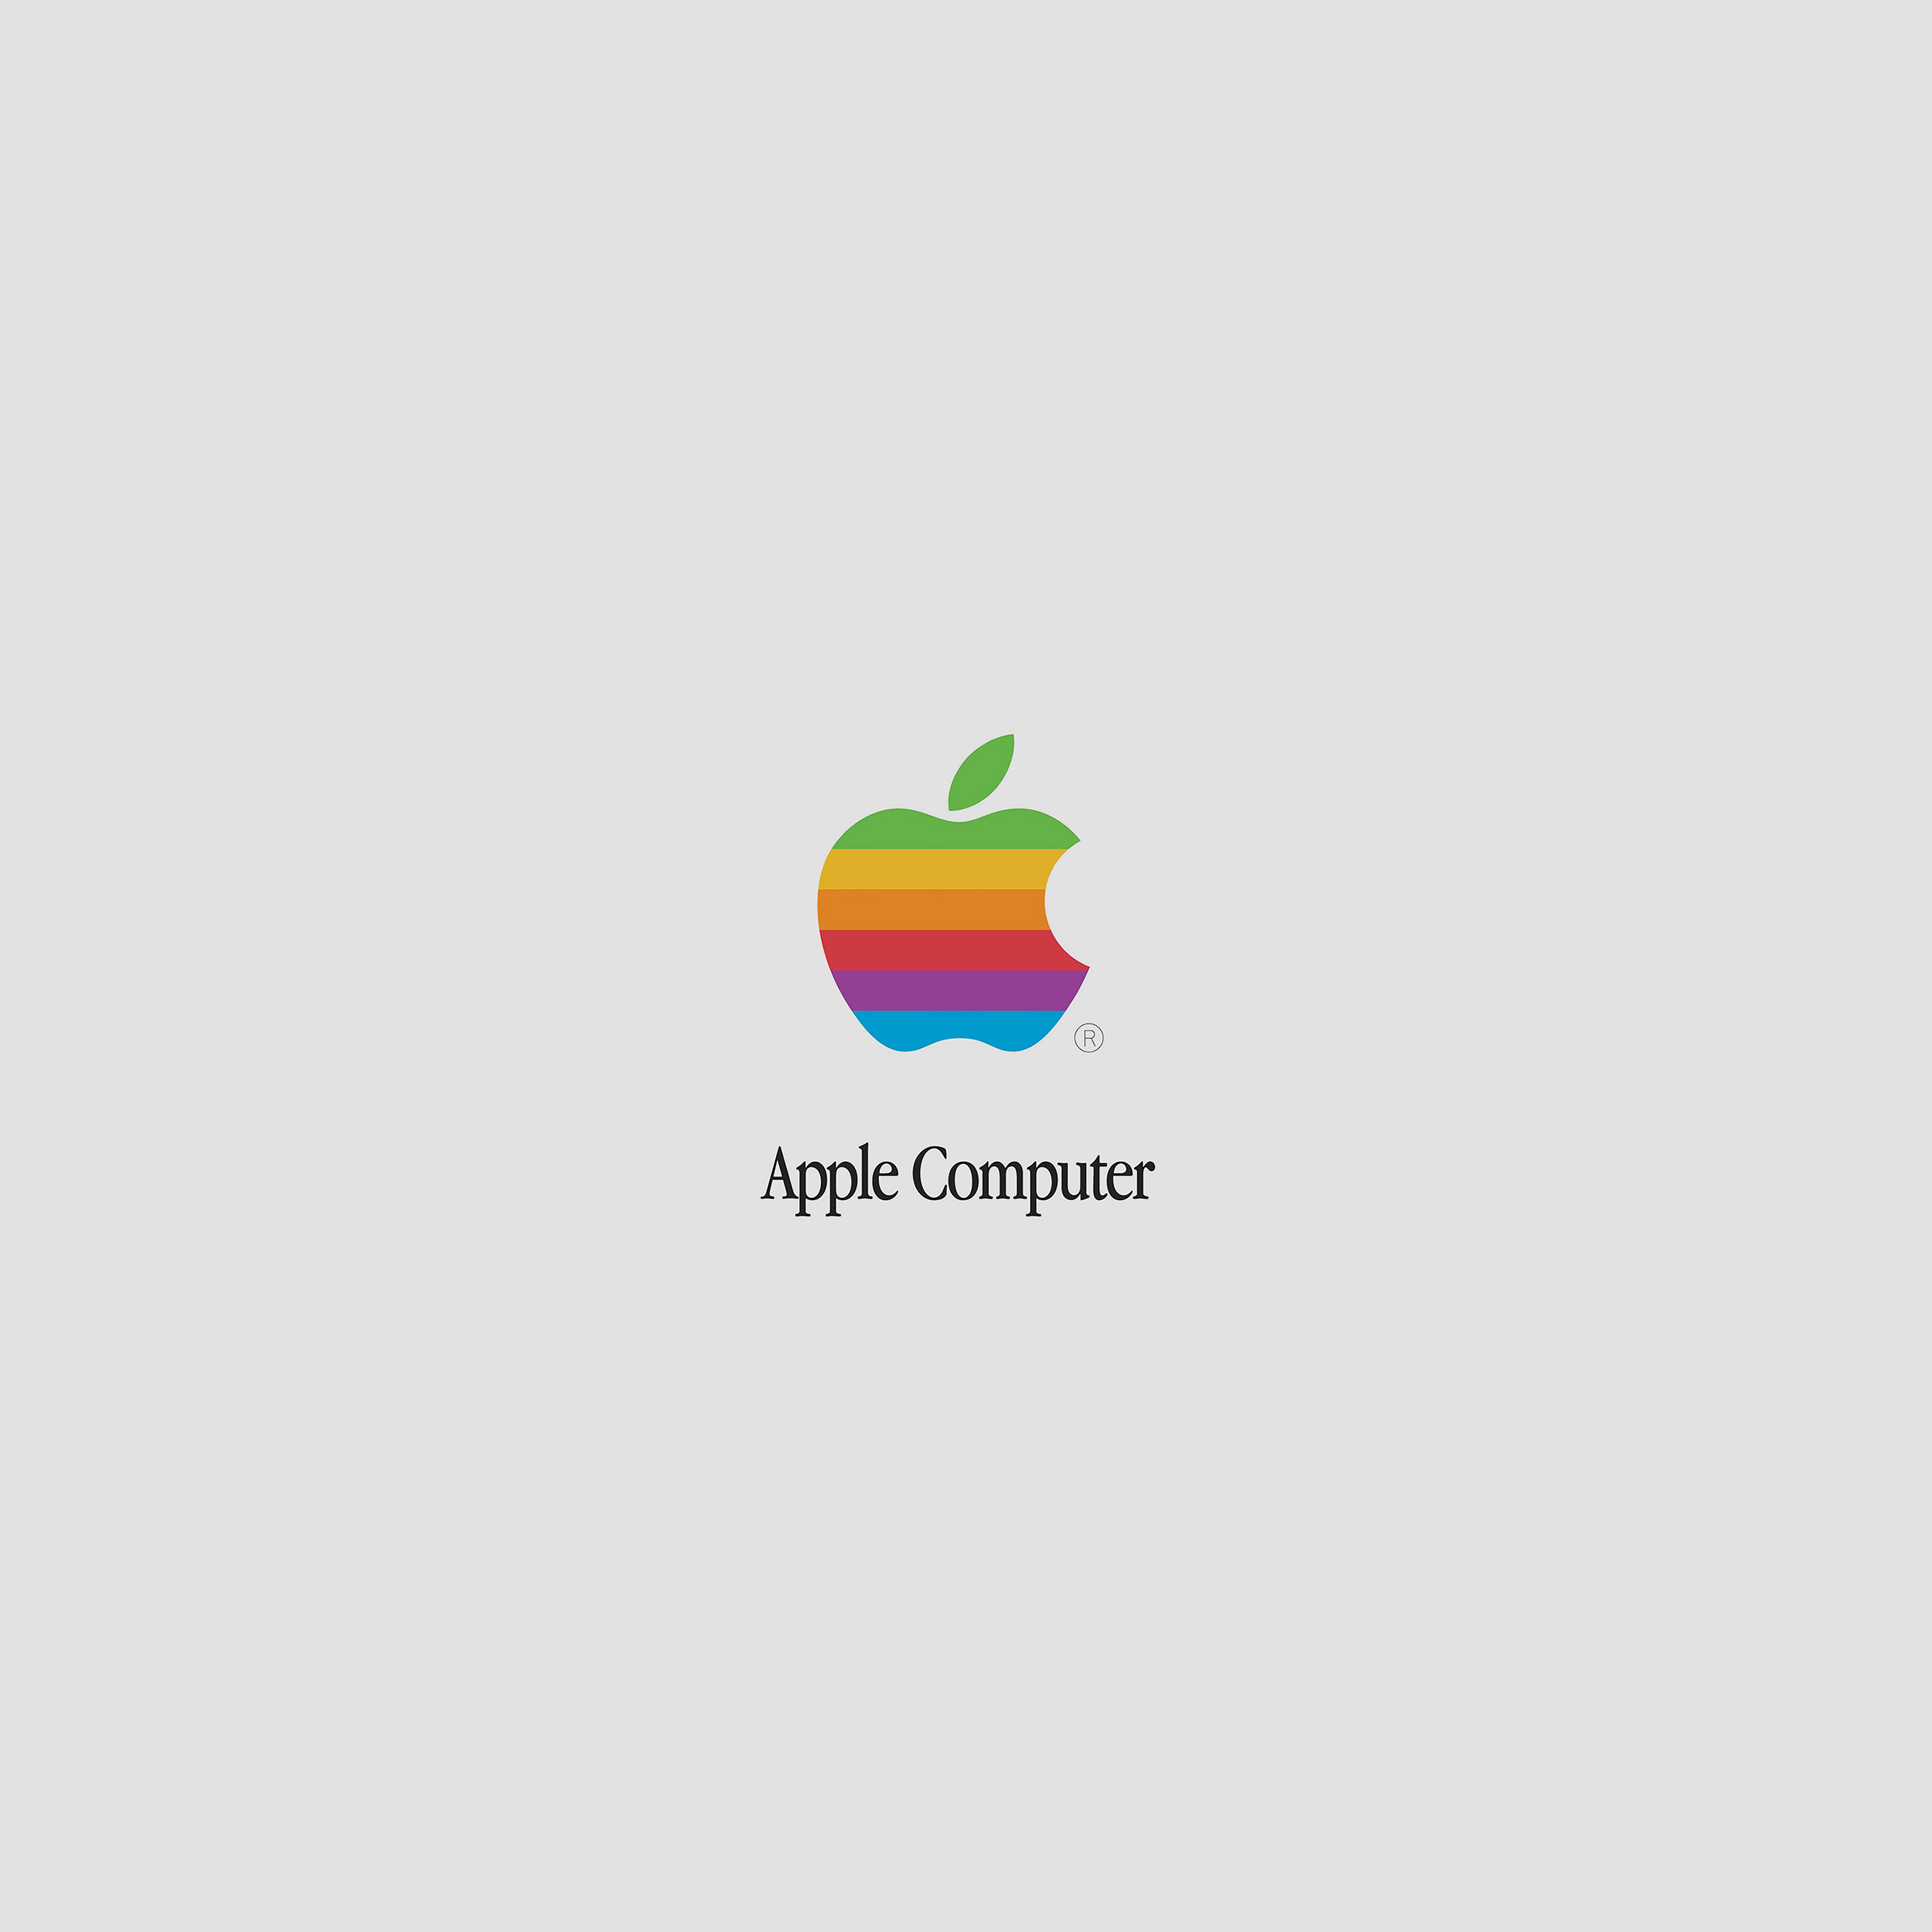 Ac41 Wallpaper Apple Computer Papers Co